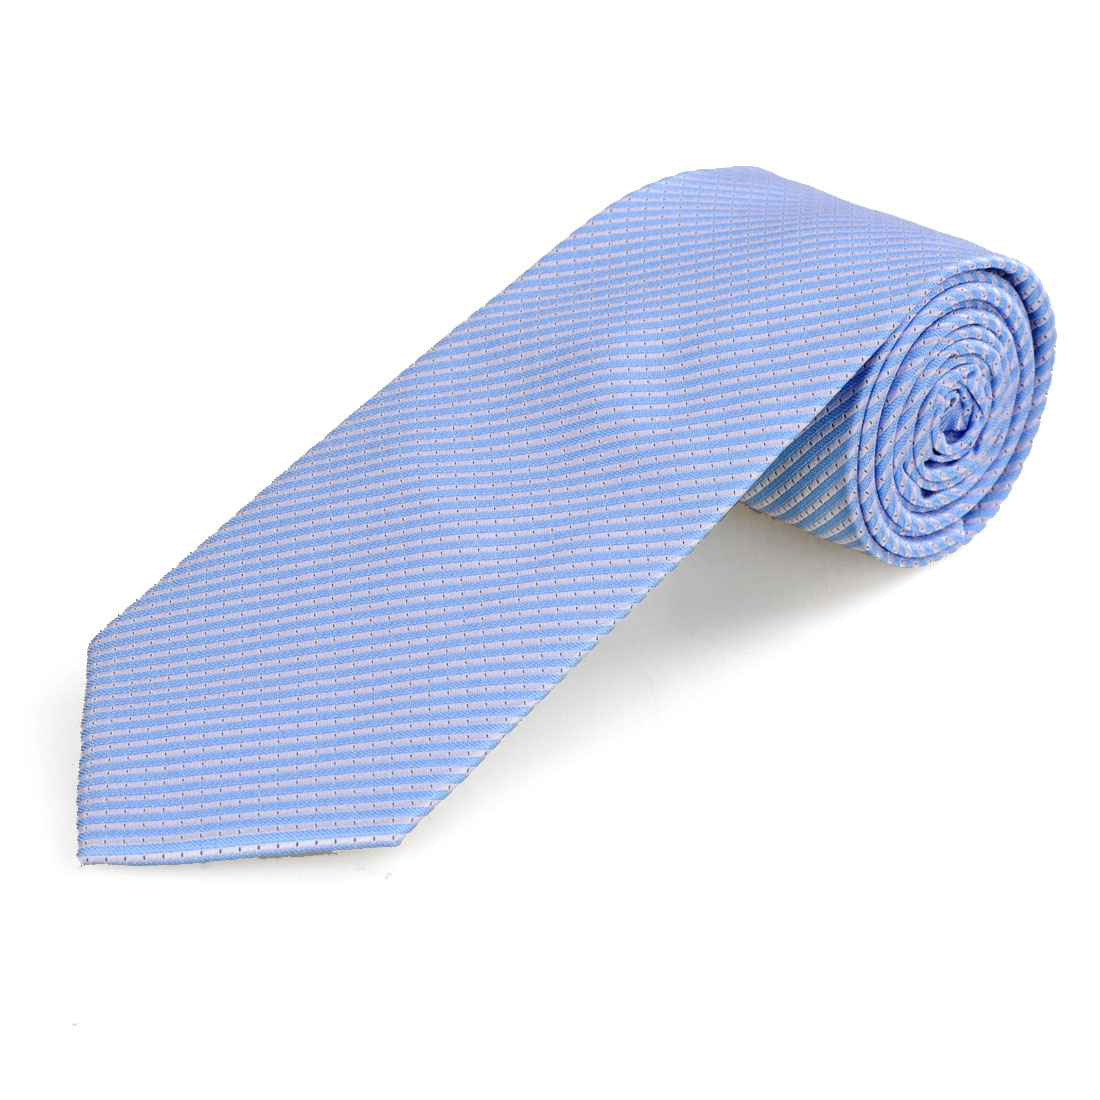 8.5cm Wide Baby Blue Stripe Print Polyester Self Tie Necktie for Men